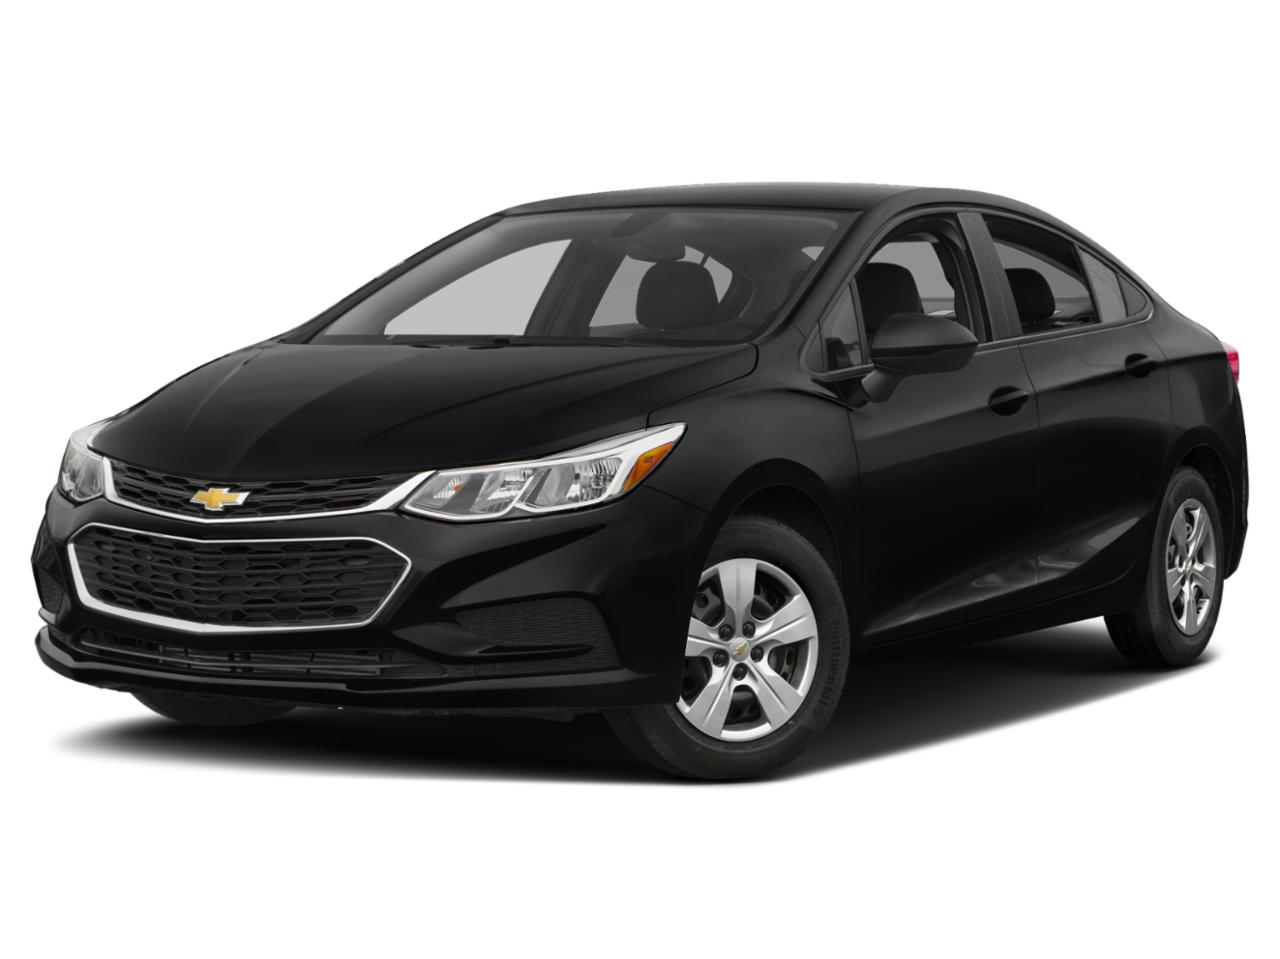 2018 Chevrolet Cruze Vehicle Photo in Nashua, NH 03060